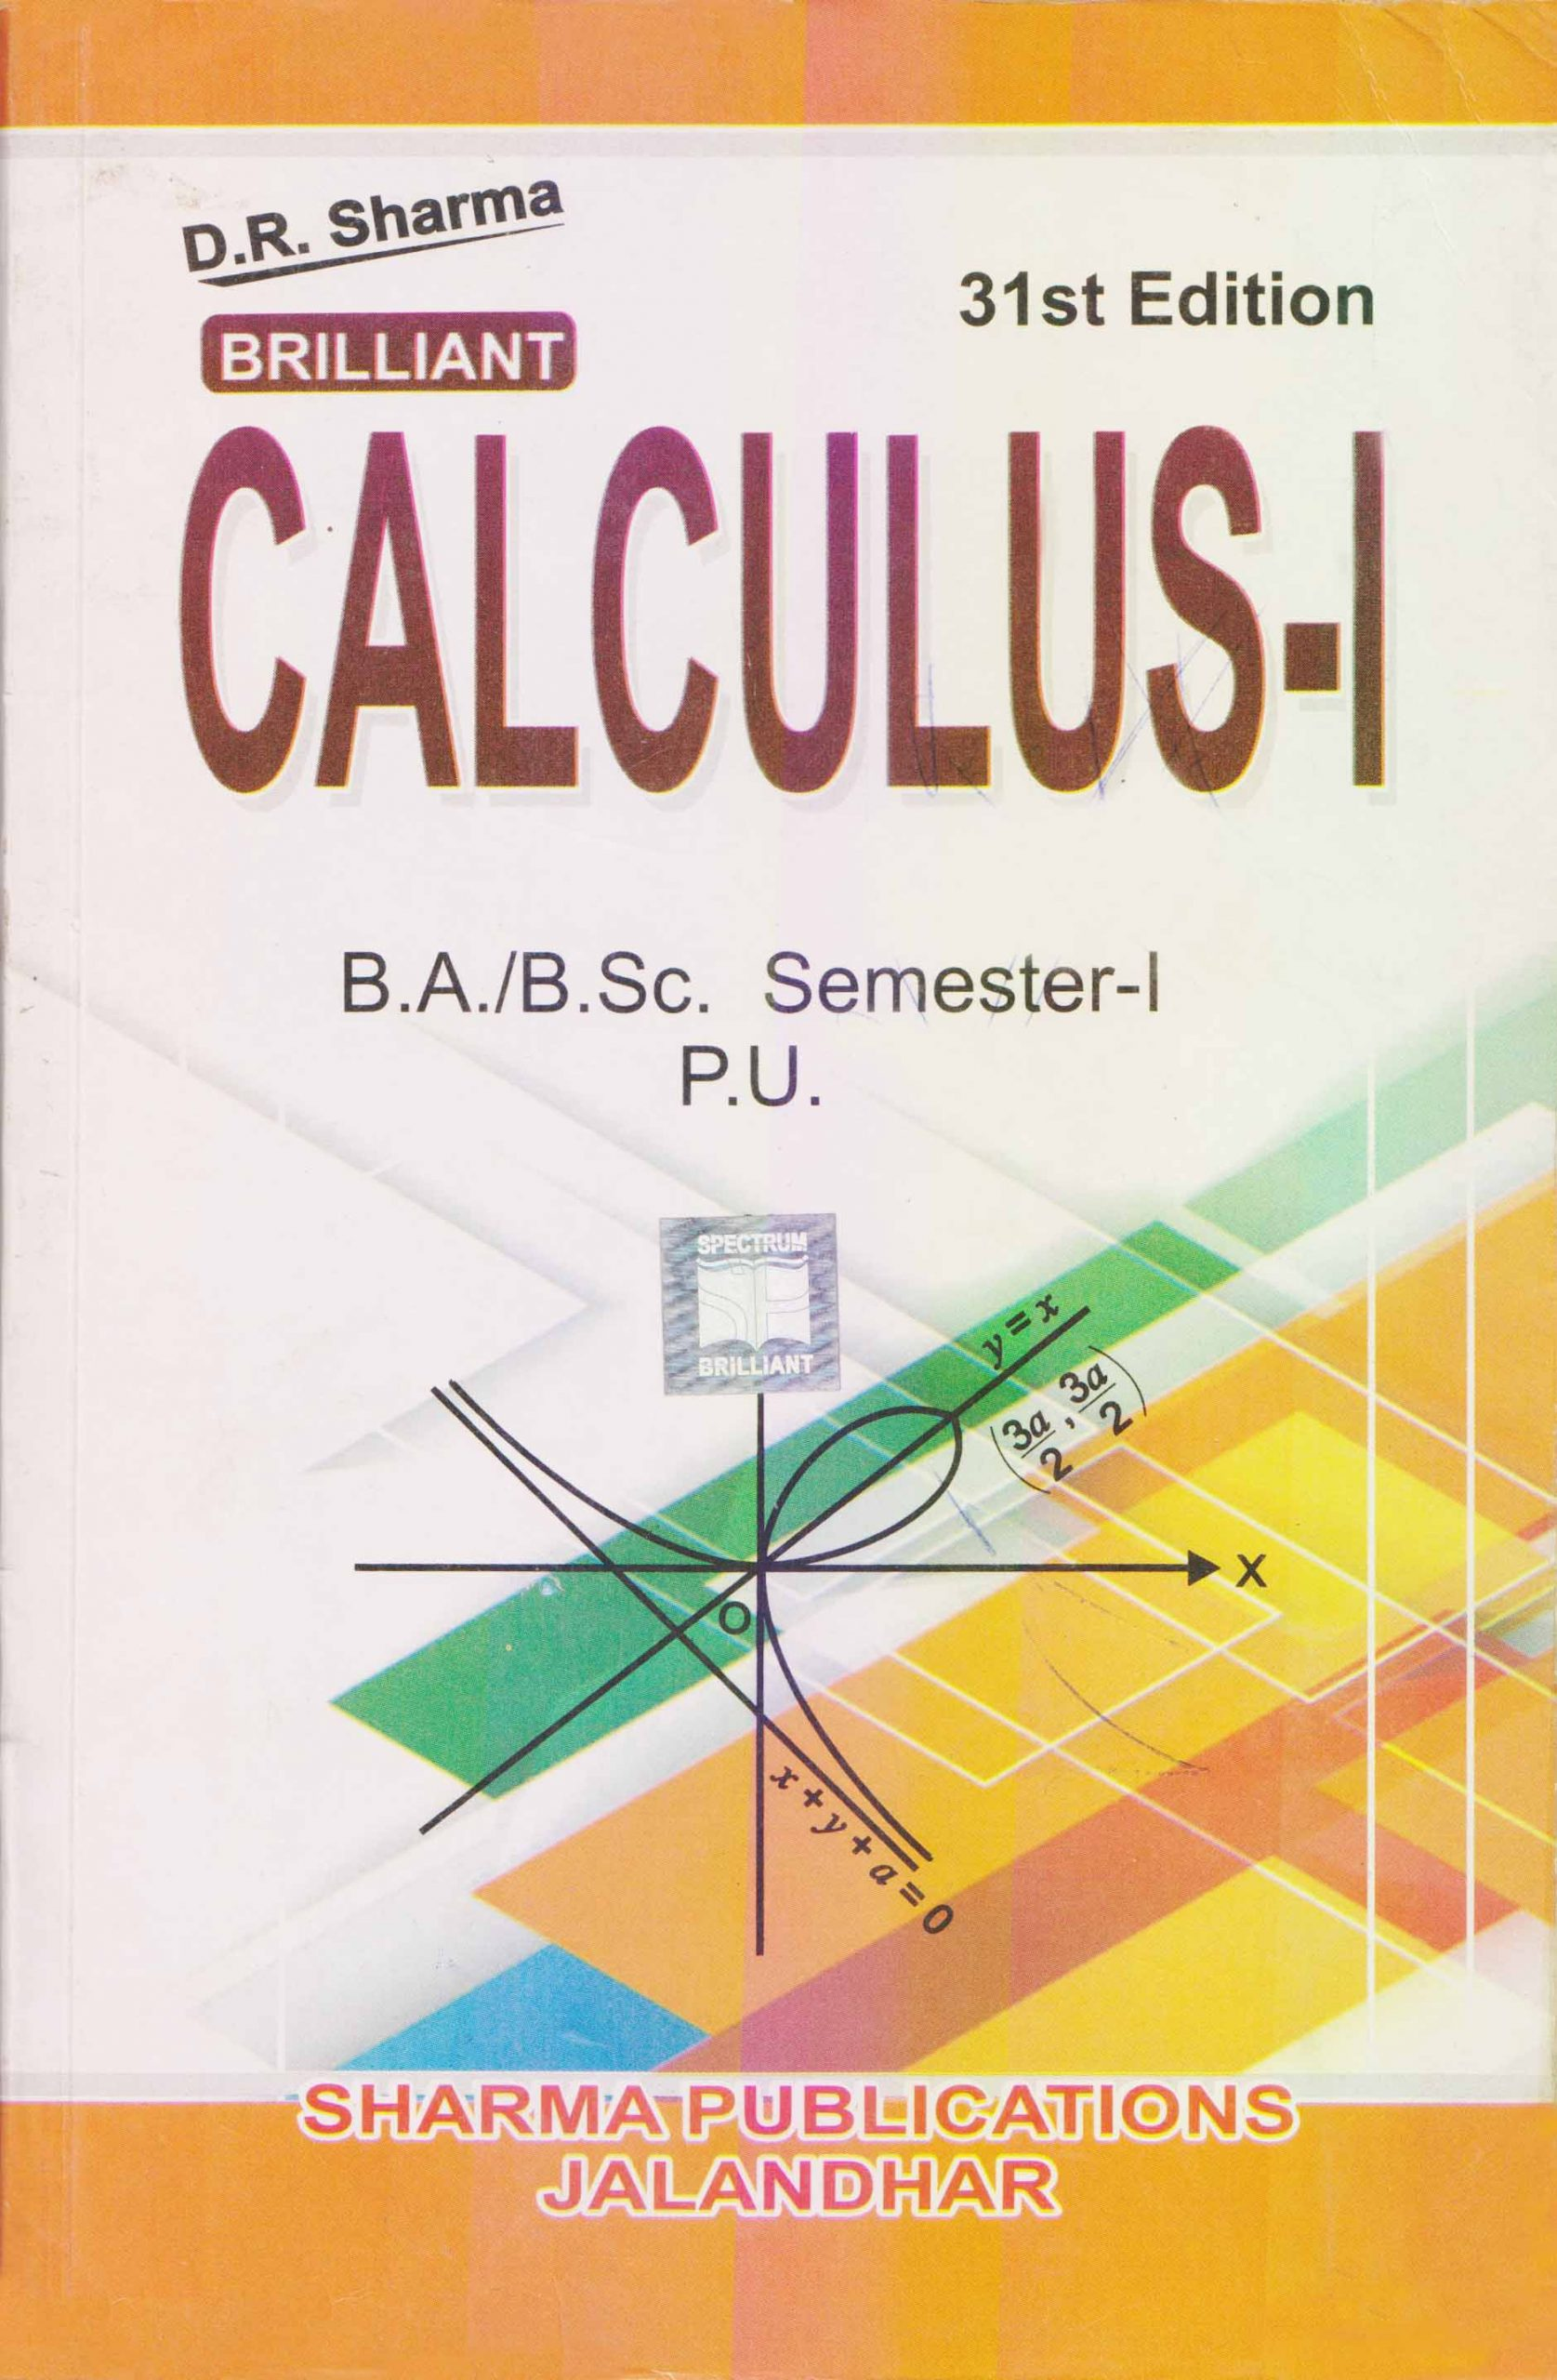 Calculus-I for B.A. / B.Sc., Sem. 1 (P.U.) by D.R. Sharma